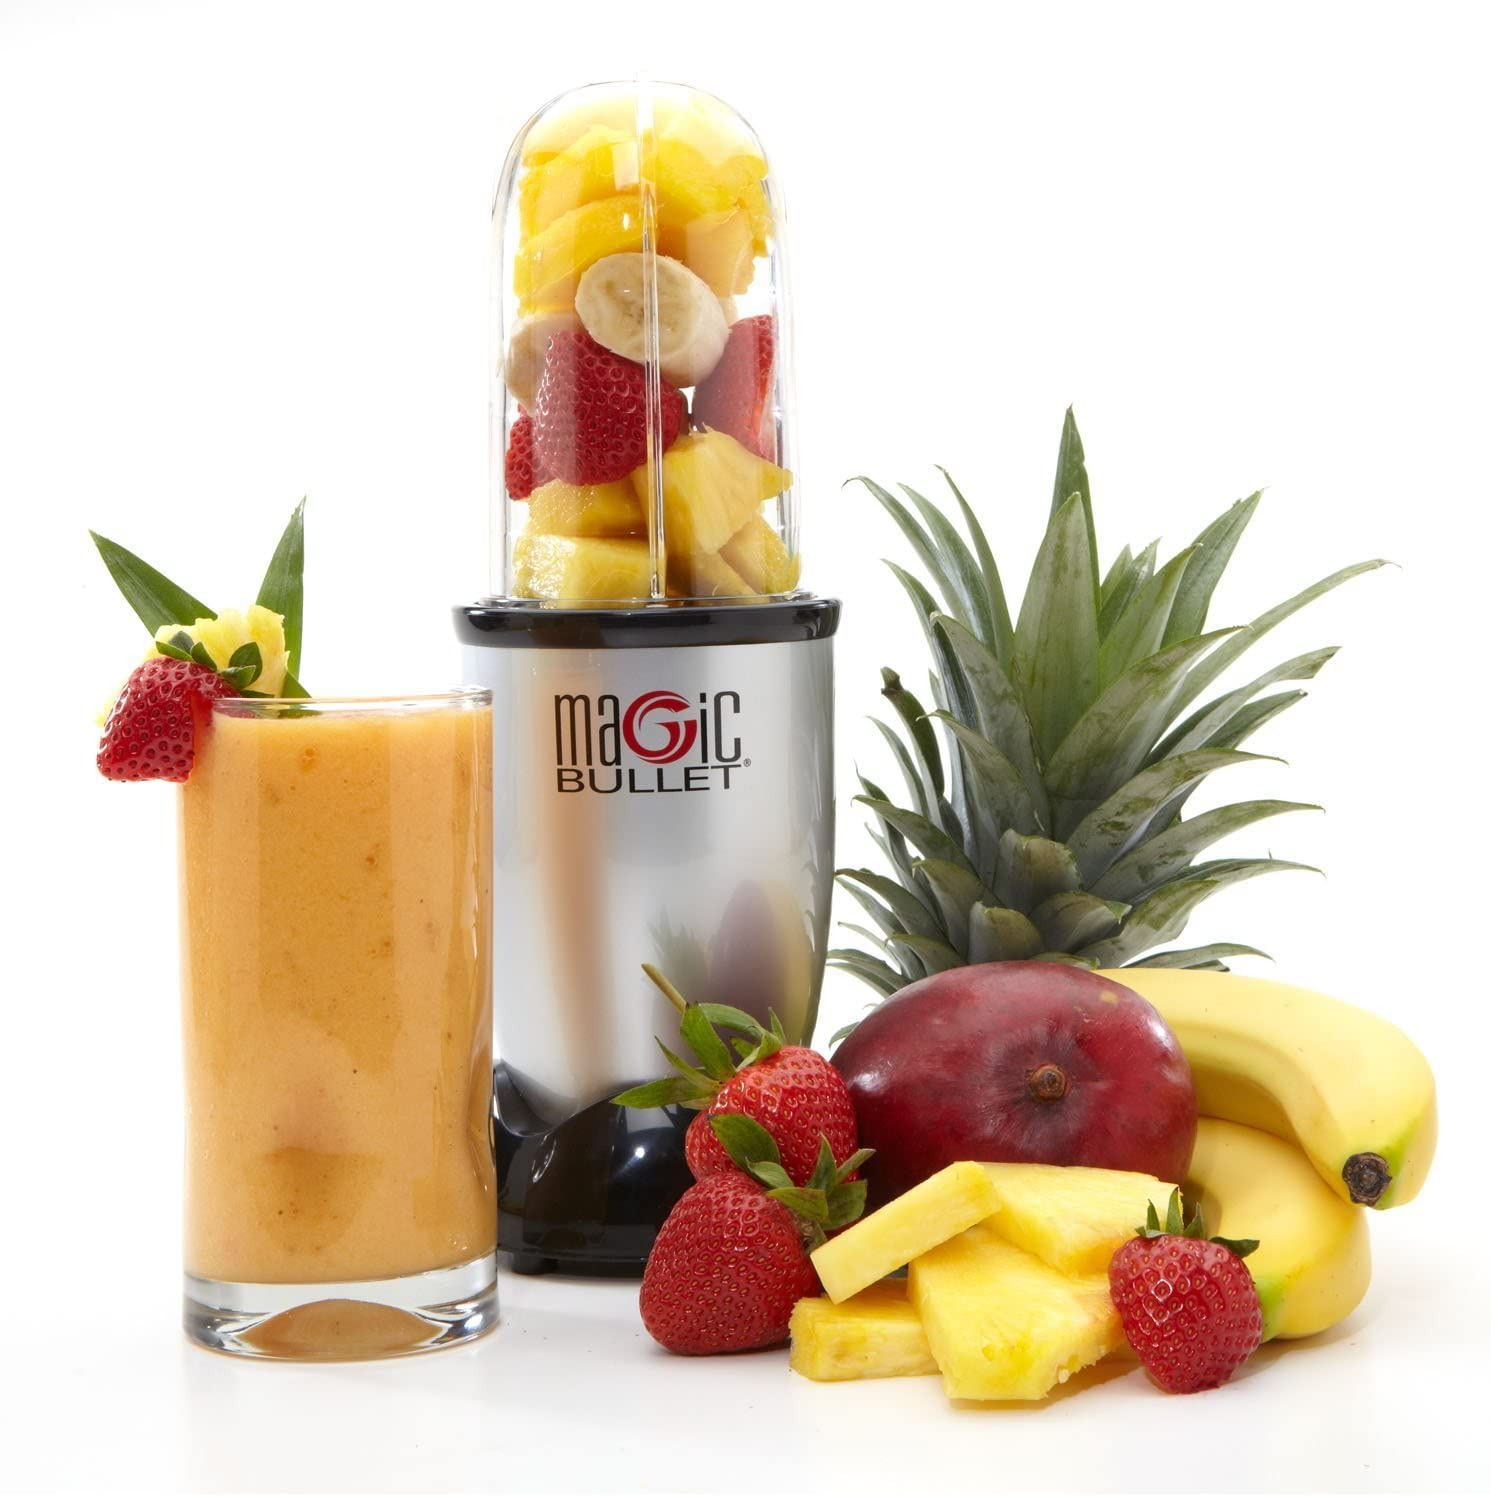 Magic Bullet 17 piece Food Processor - The Original - In 10 seconds or less Chop Mix Blend Whip Grind Mince Make Healthy Smoothies and Nutritious ...